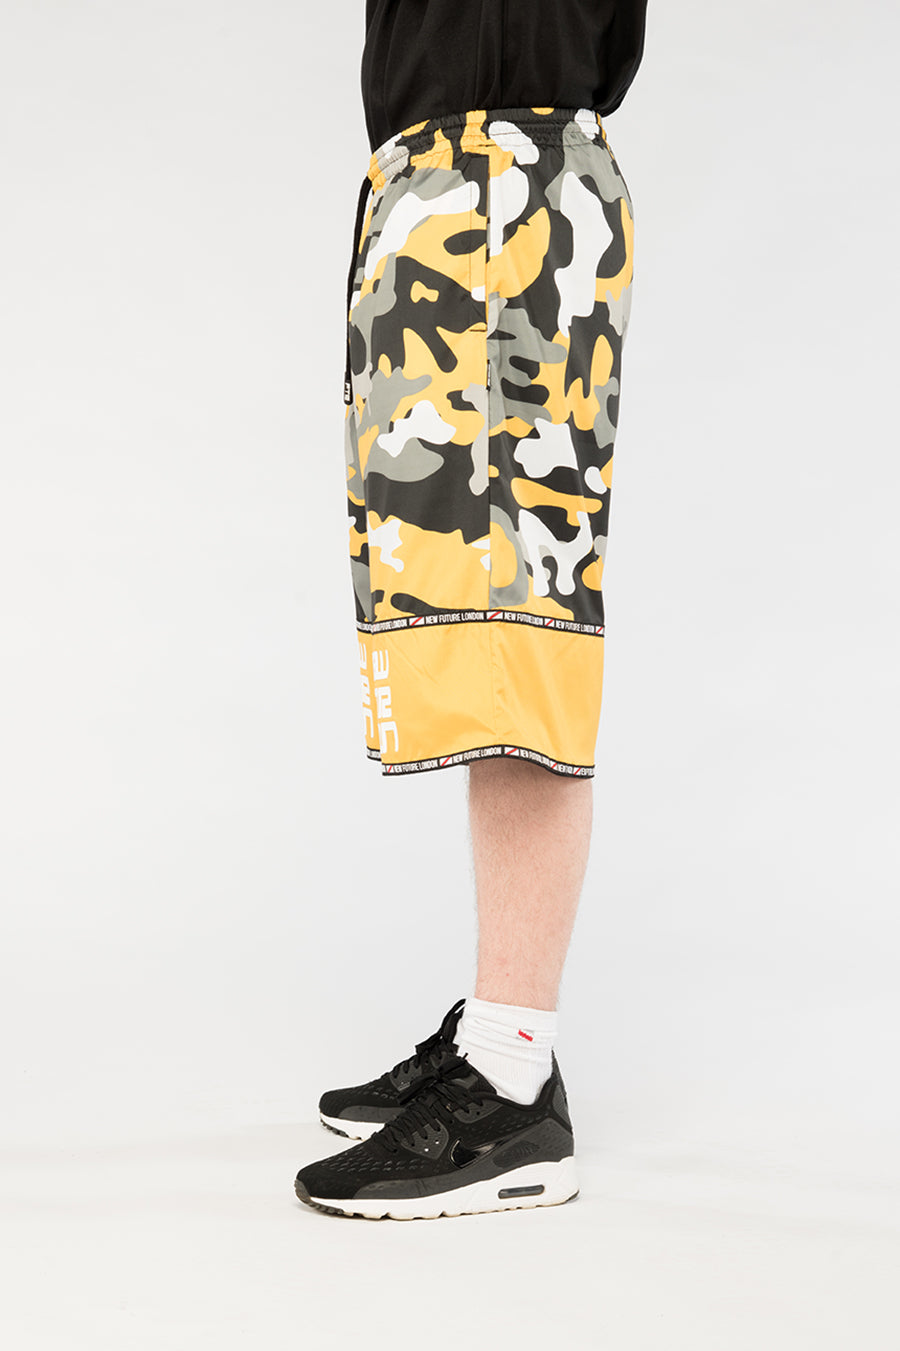 new_future_london_racer_shorts_camo_yellow_2-1.jpg